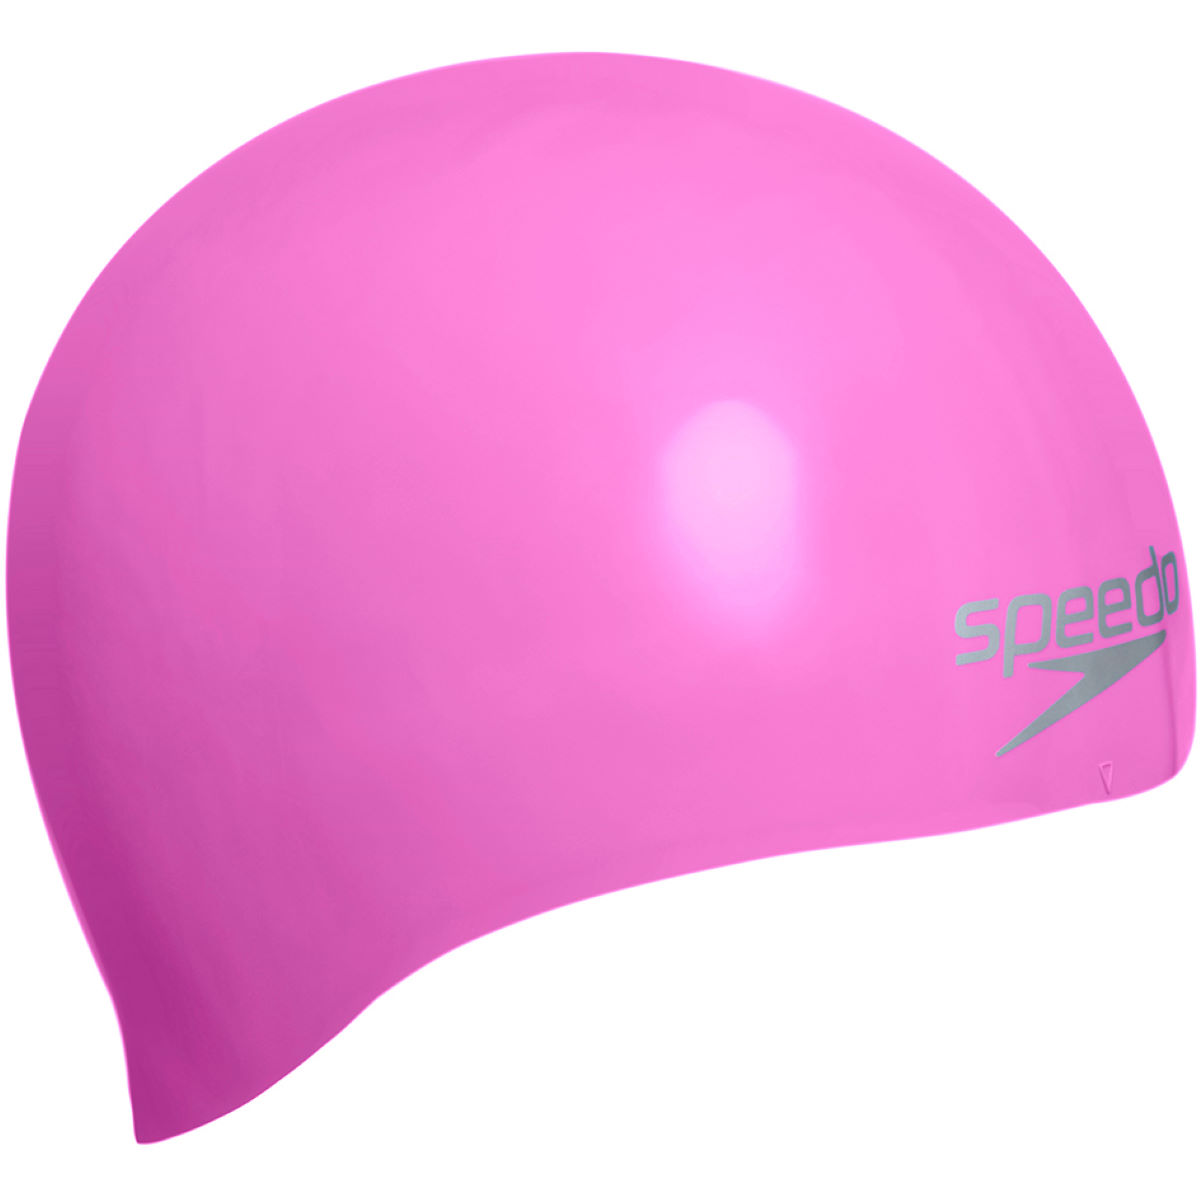 Bonnet de natation Speedo (uni, moulé en silicone) - One Size